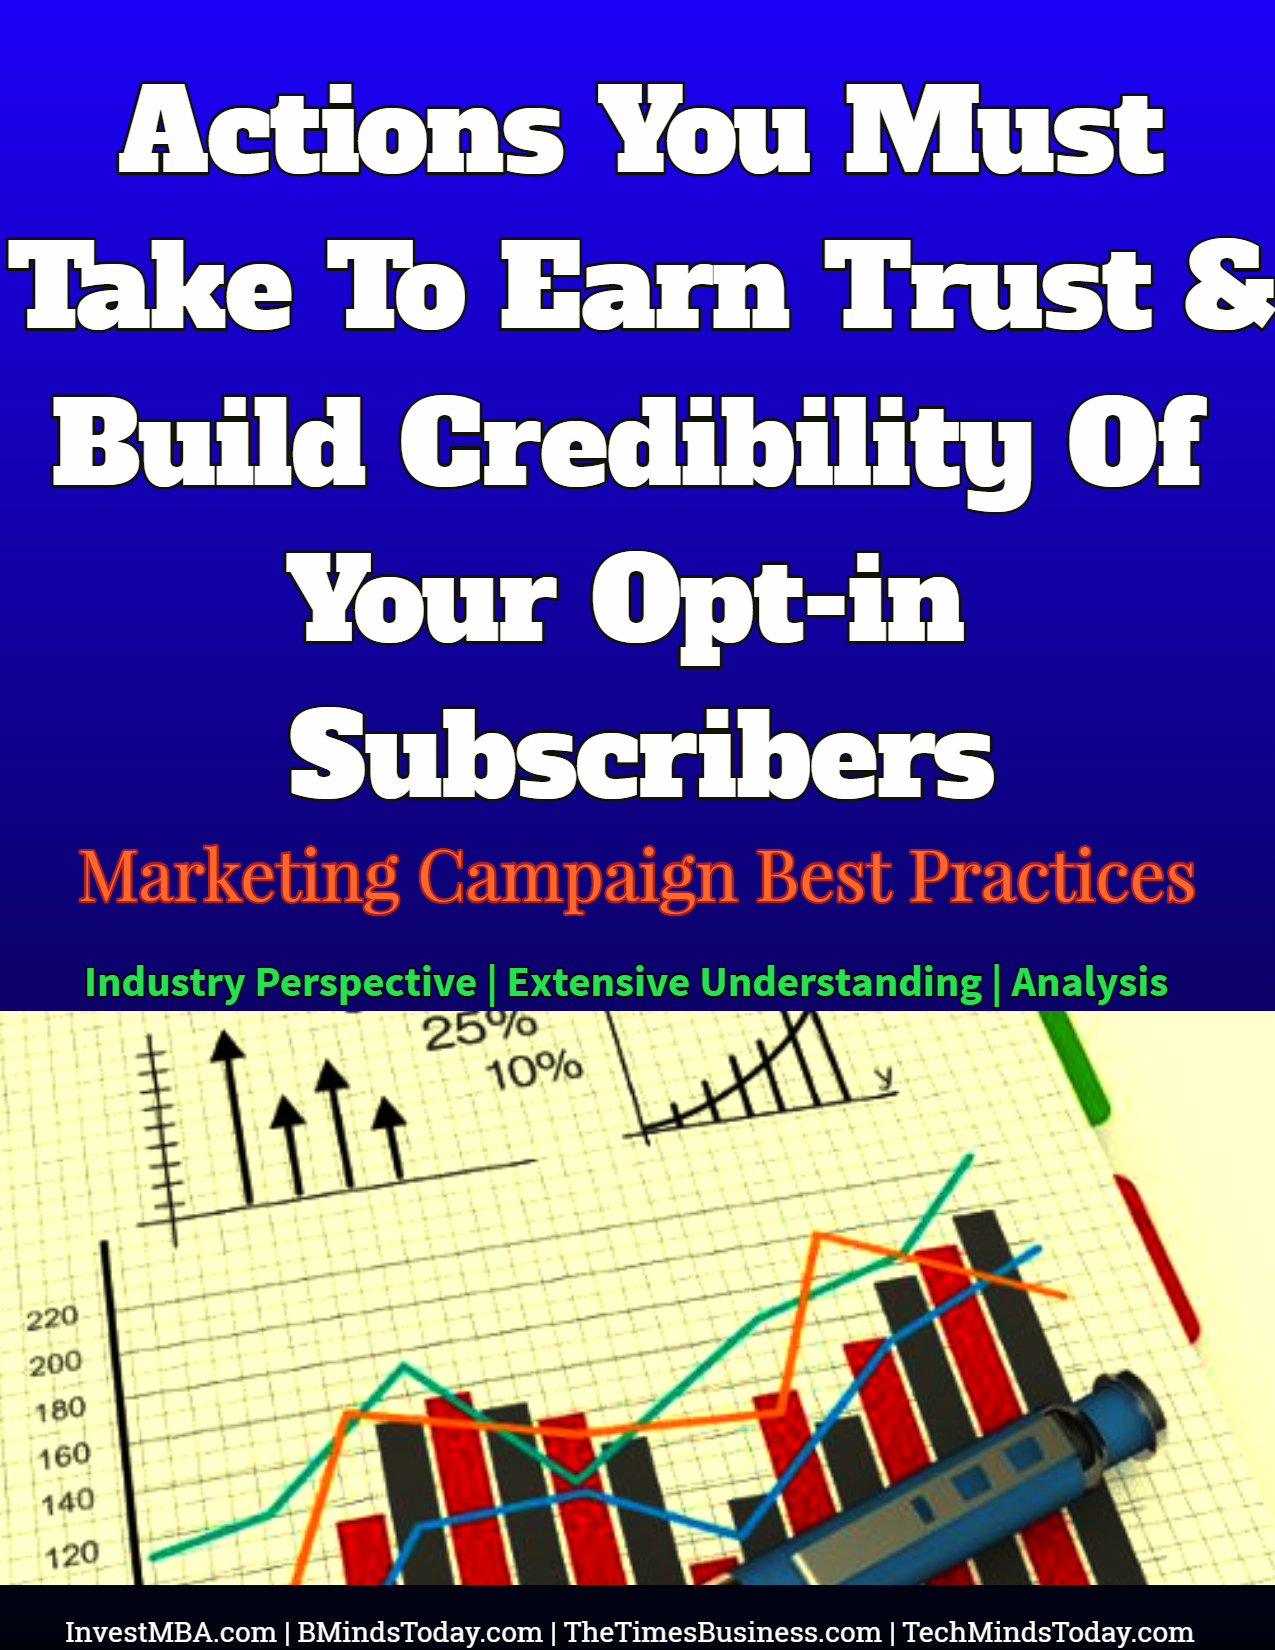 Actions You Must Take To Earn Trust & Build Credibility Of Your Opt-in Subscribers subscribers Actions You Must Take To Earn Trust & Build Credibility Of Your Opt-in Subscribers Actions You Must Take To Earn Trust Build Credibility Of Your Opt in Subscribers